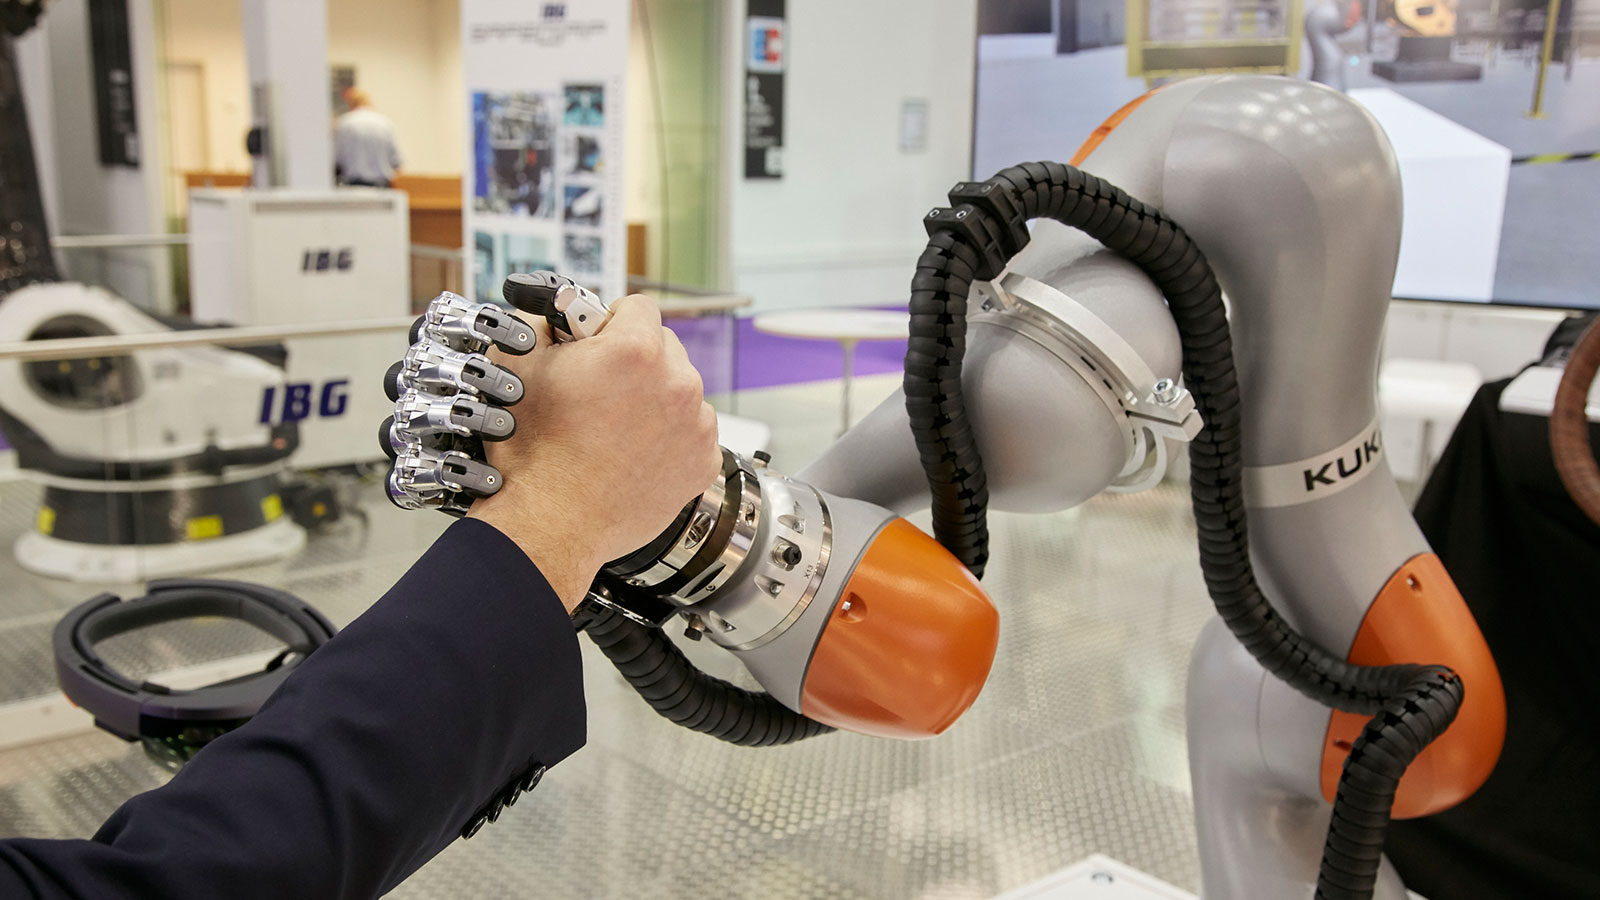 Arm wrestling: A robot arm and a human at NORTEC